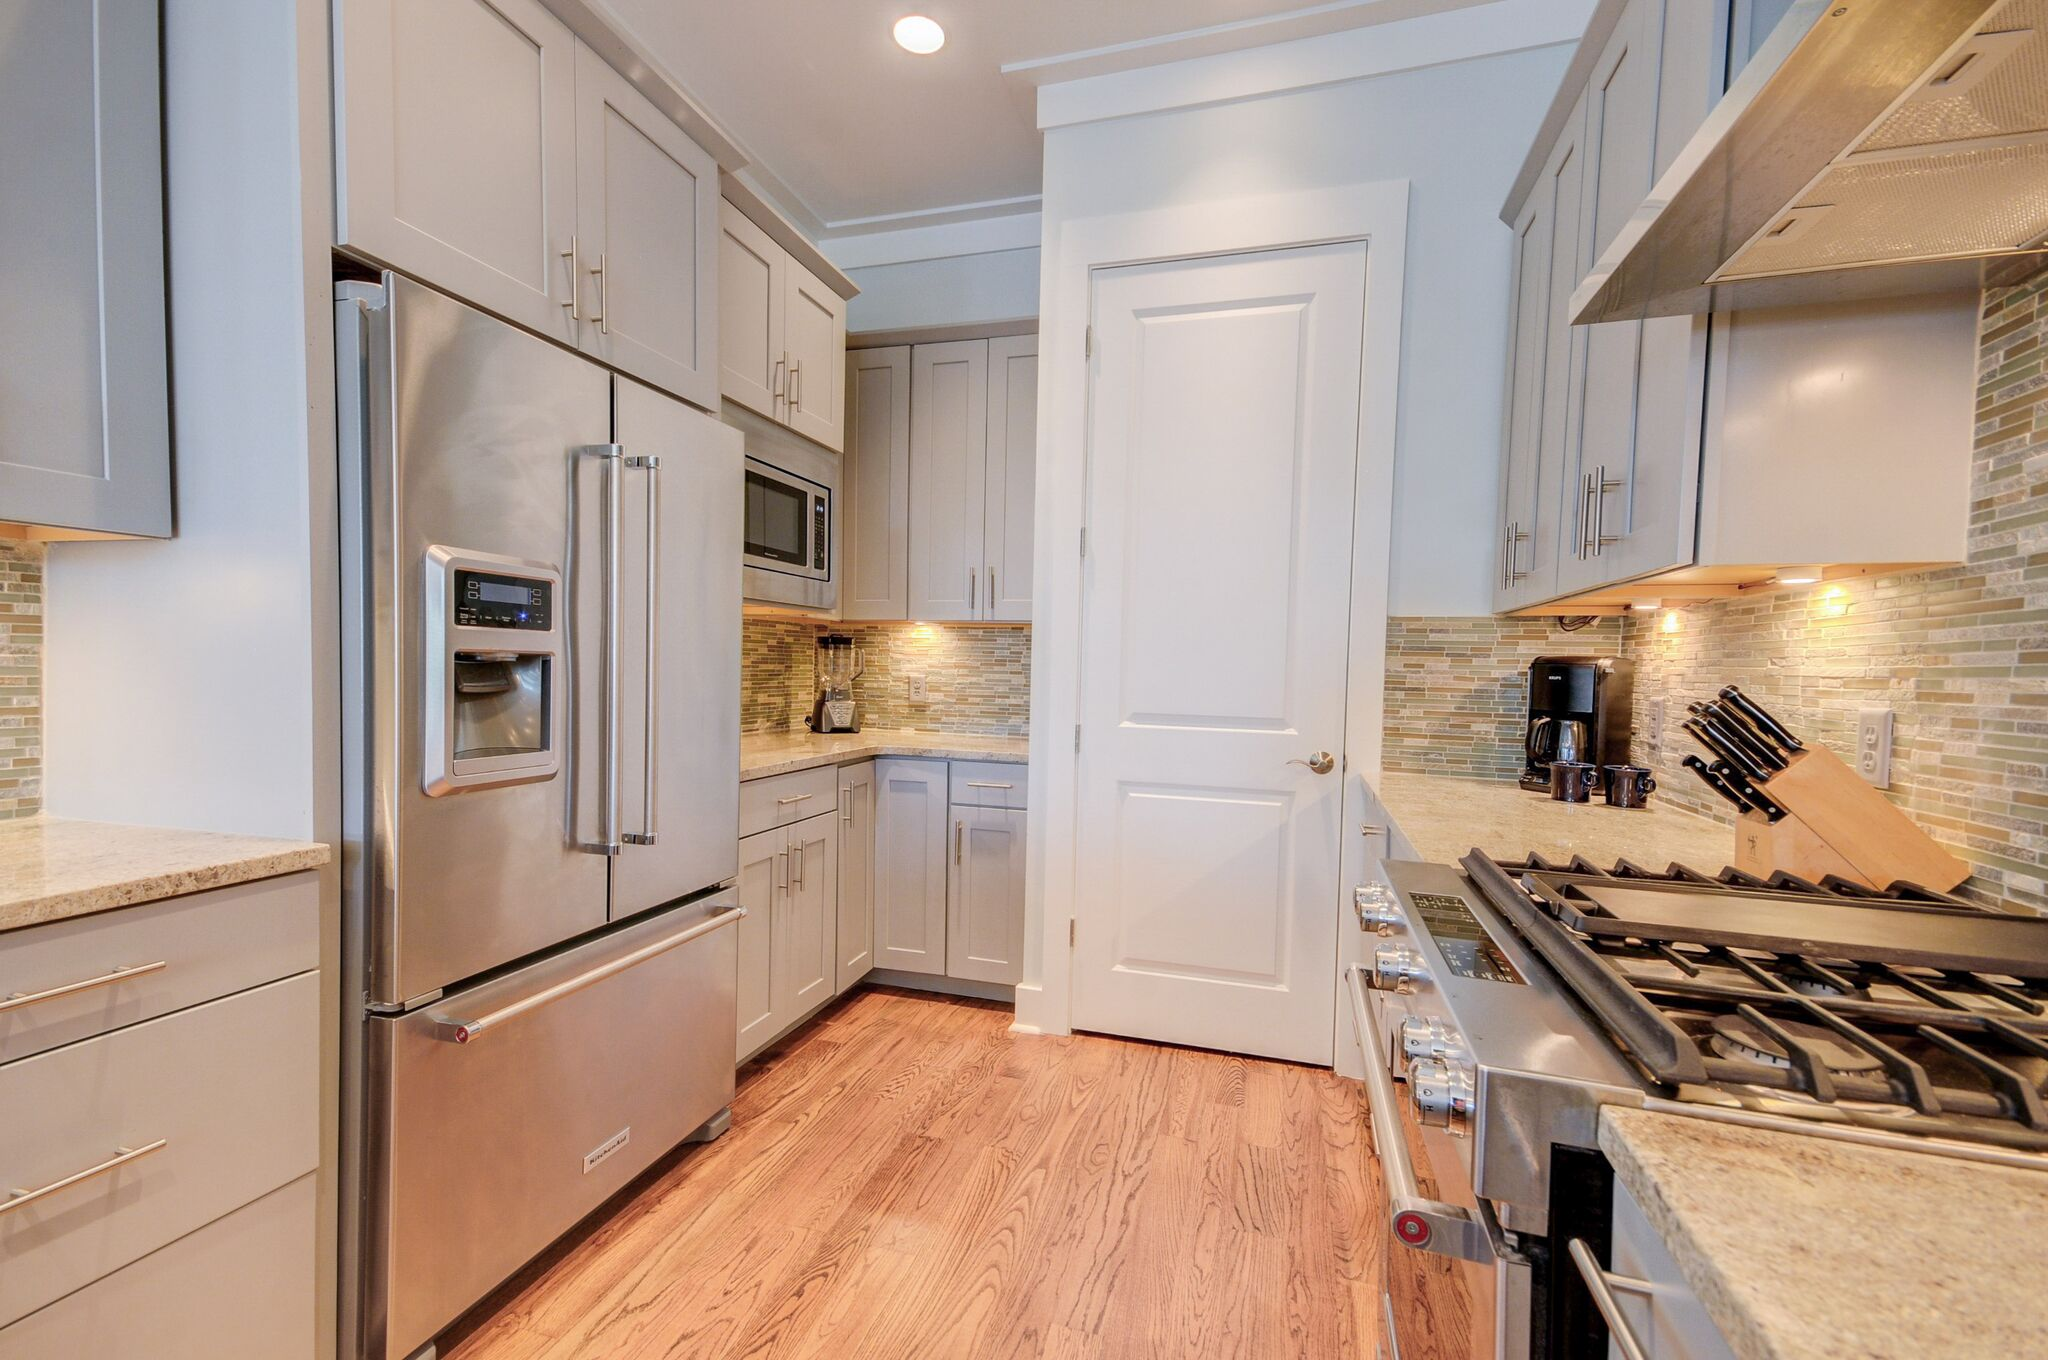 Stainless steel appliances with 6-burner gas range